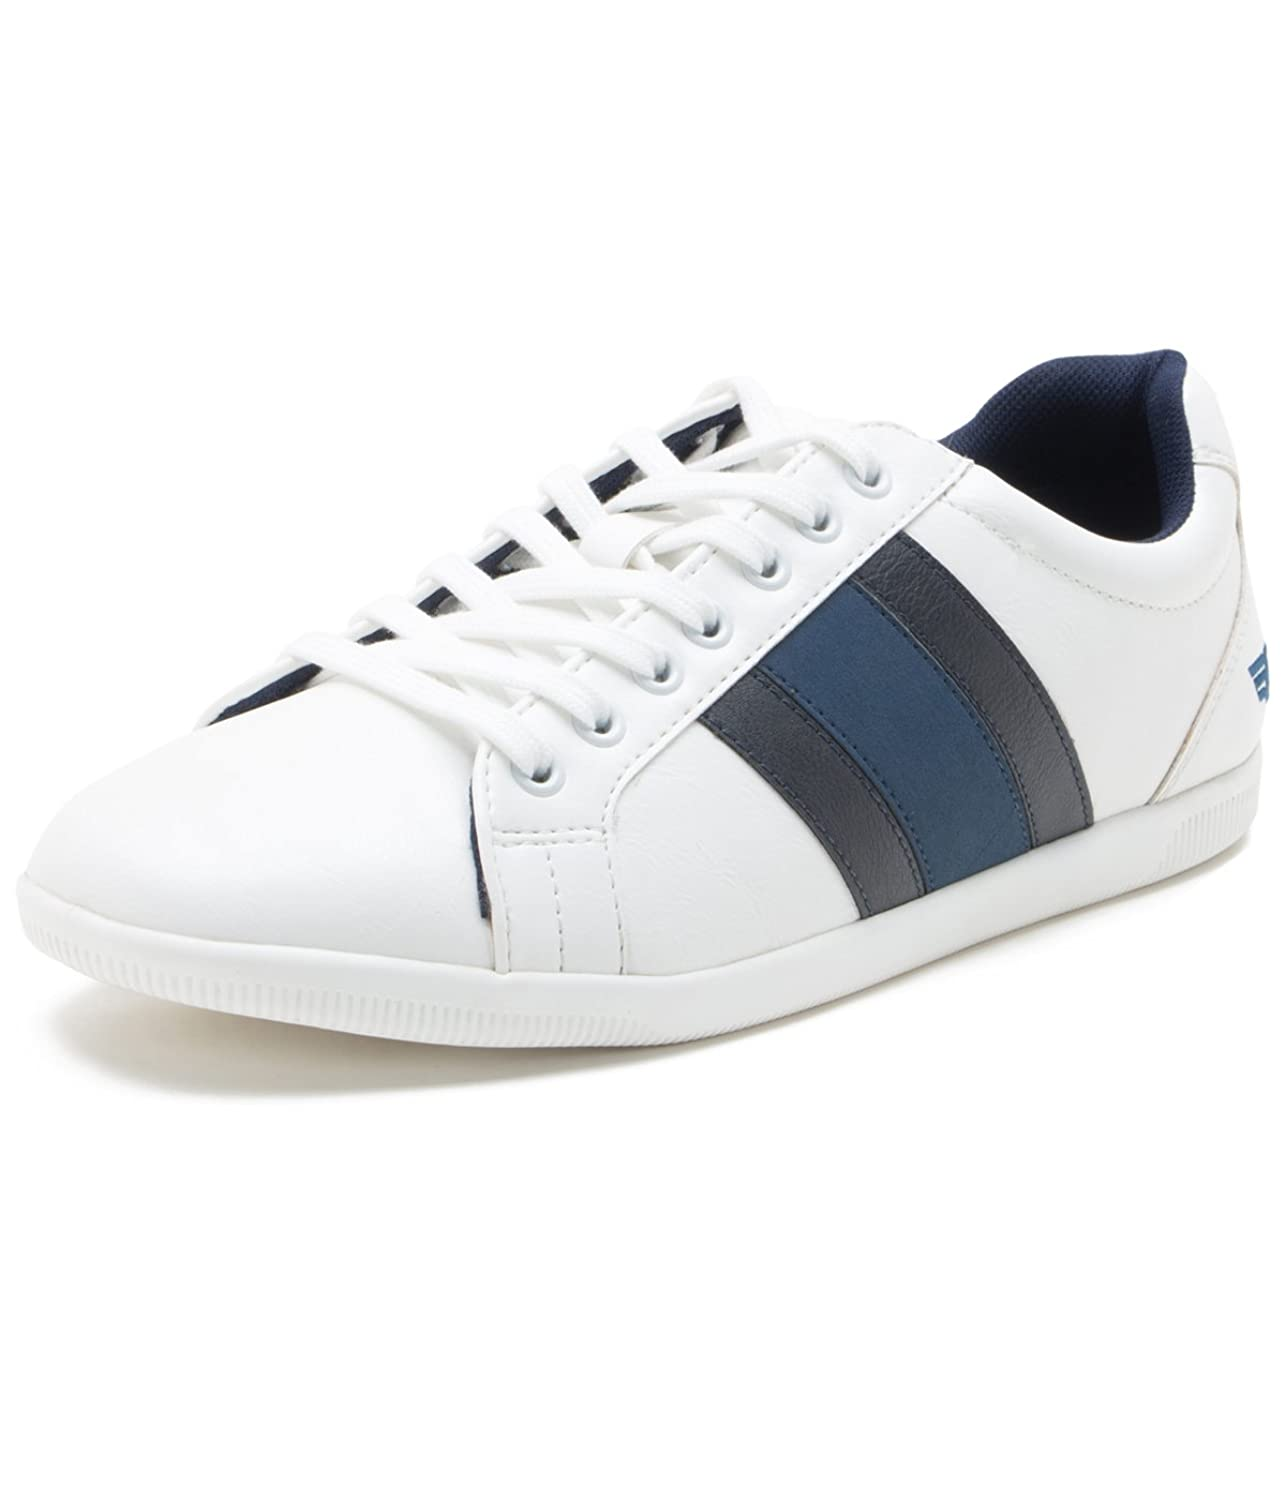 Red Tape Men's White Sneakers